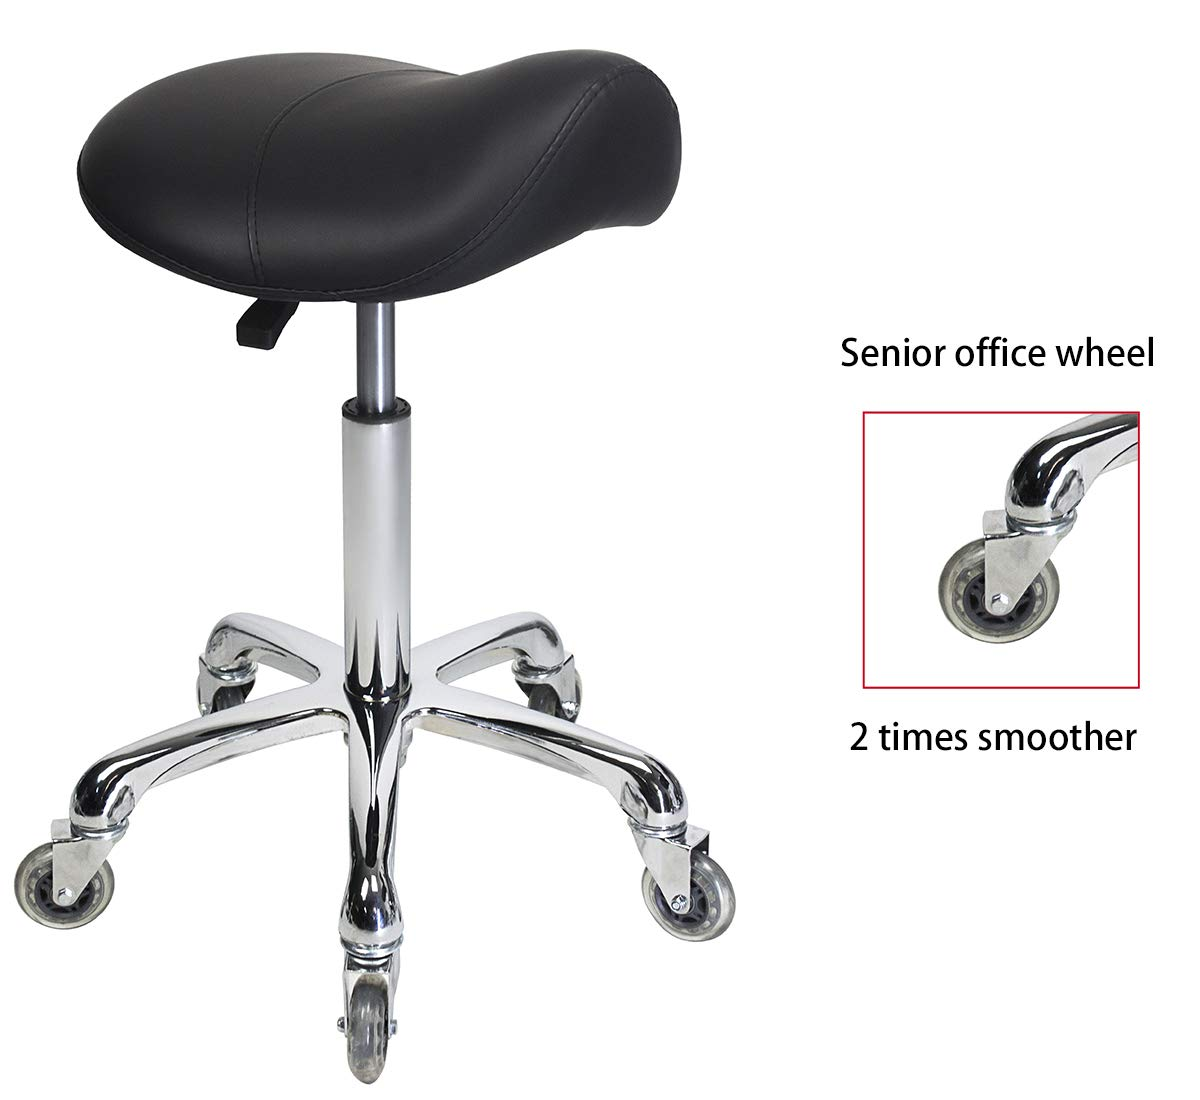 Antlu Saddle Rolling Ergonomic Swivel Stool Chair, for Drafting Massage Clinic Spa Salon,Adjustable Hydraulic with Wheels (Black)